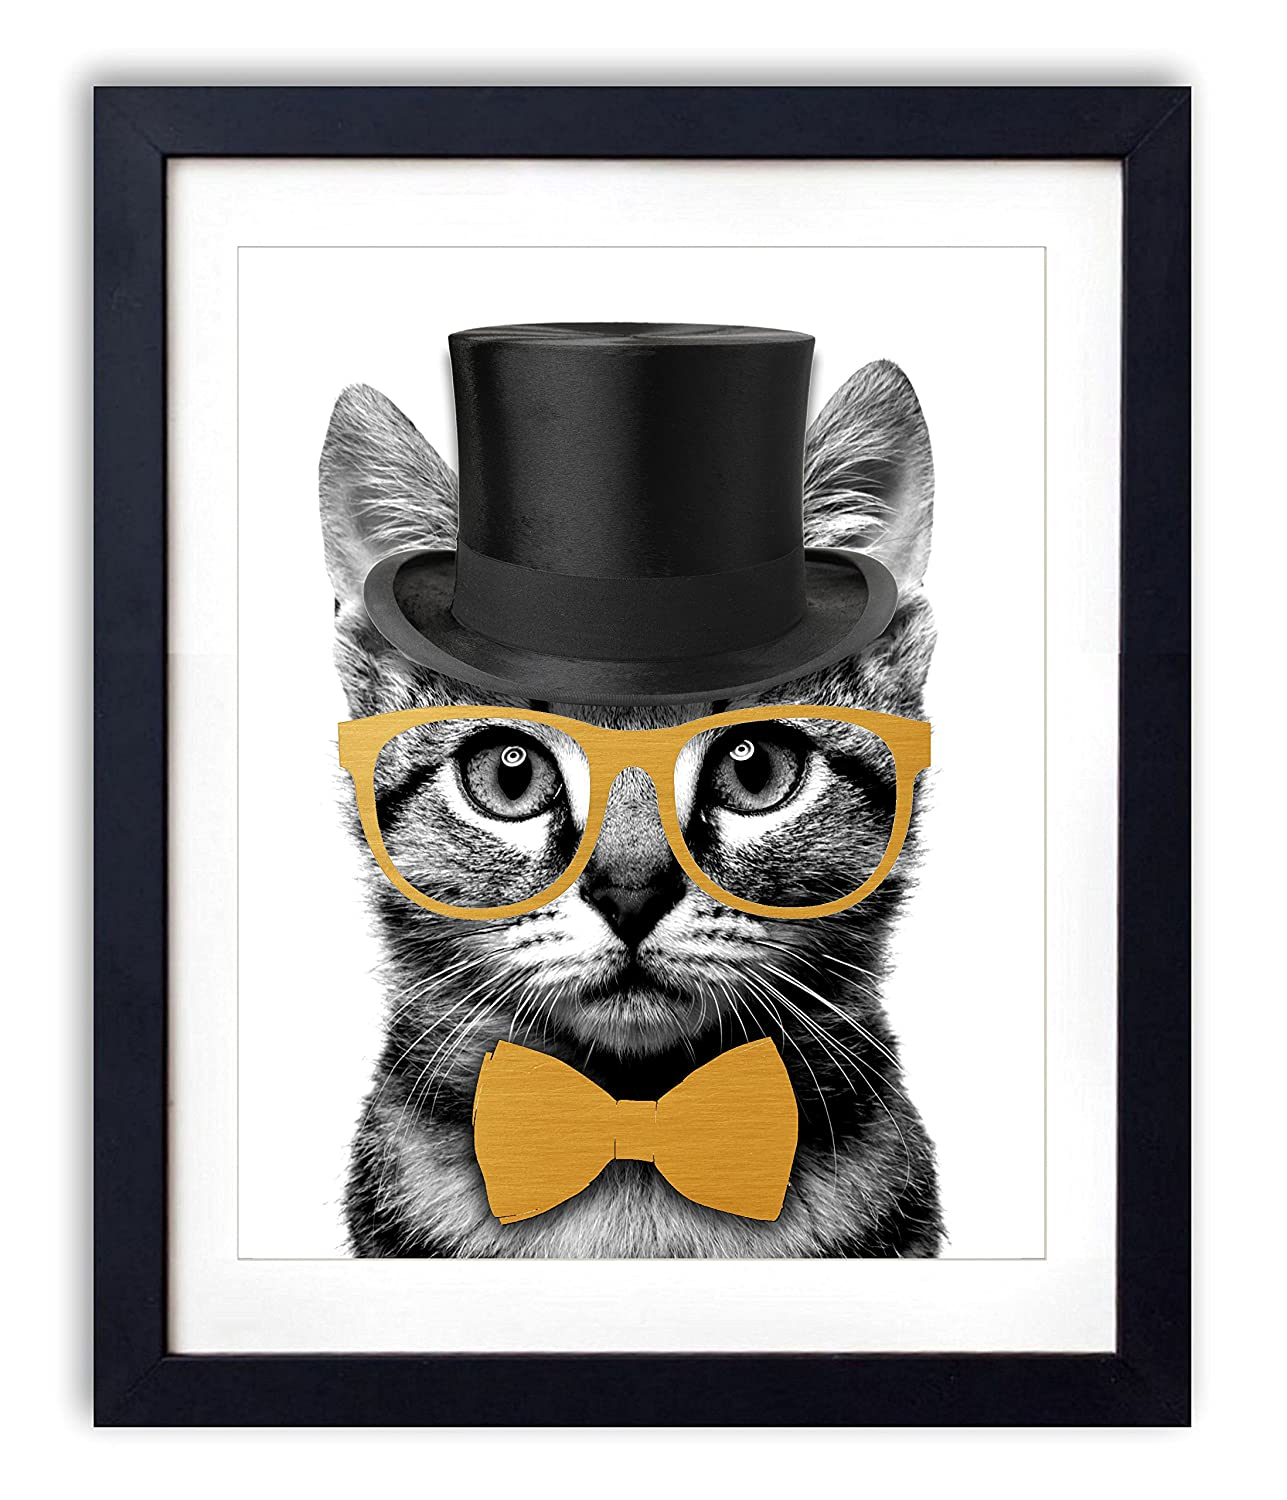 Gold Foil - Mr. Catsanova Upcycled Wall Art Vintage Dictionary Art Print 8x10 inches / 20.32 x 25.4 cm Unframed